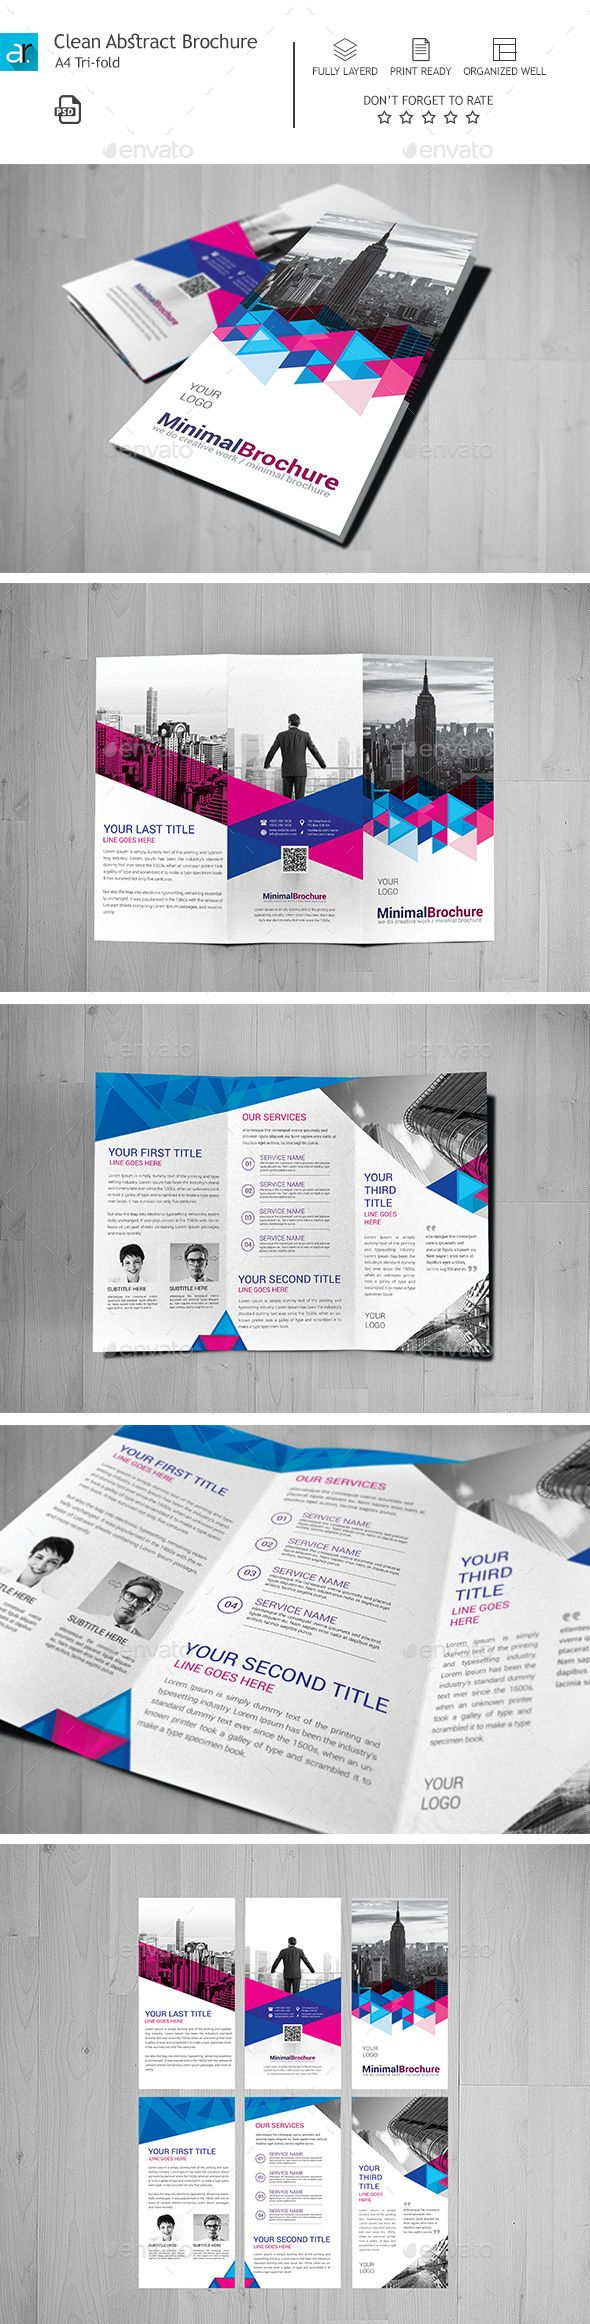 3 Sided Brochure Template Selol Ink